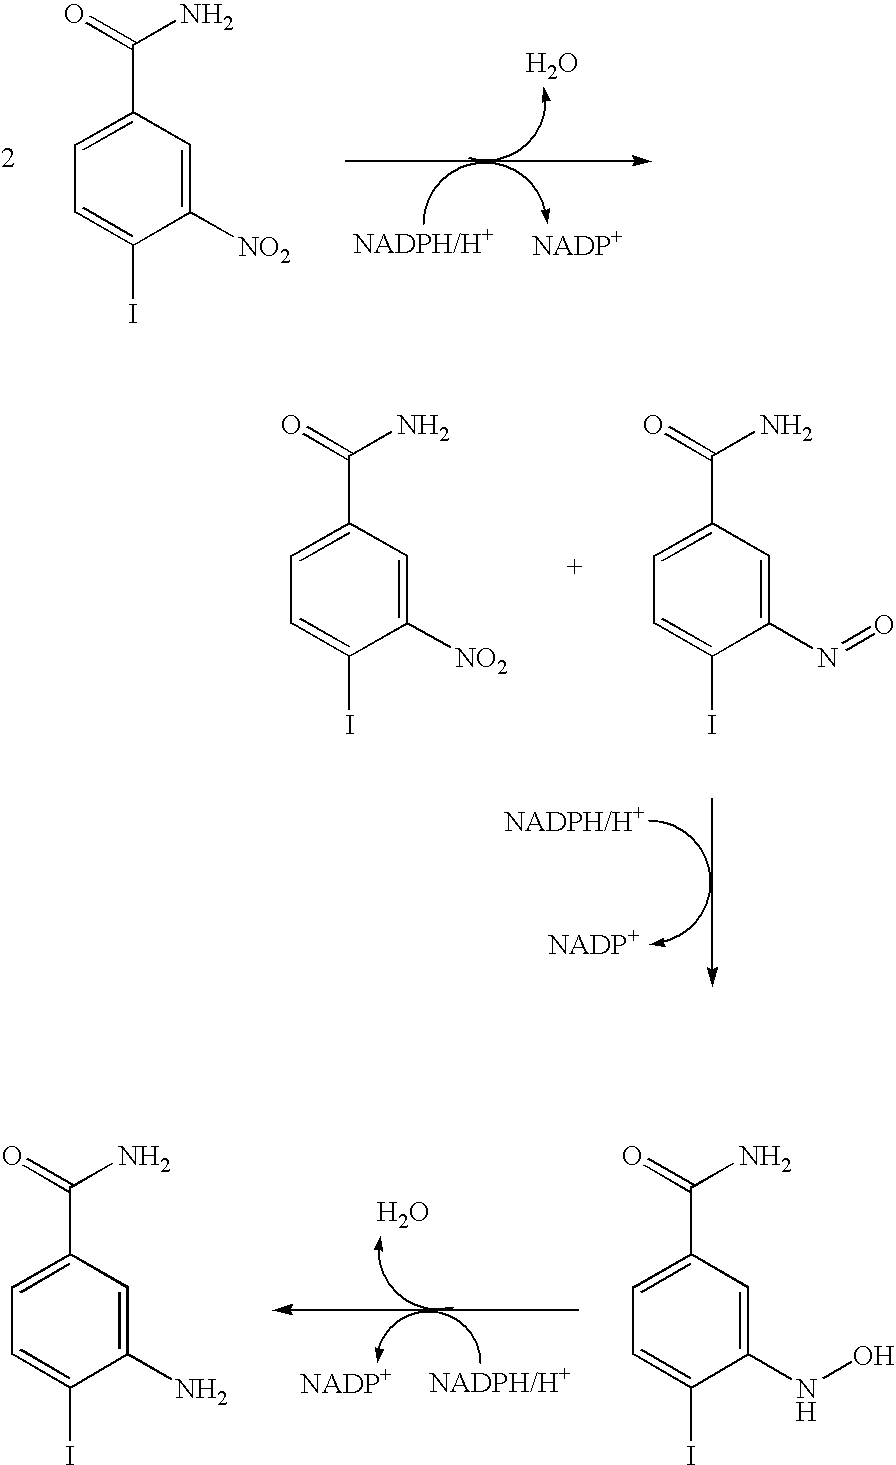 heterocycles types and biosynthesis Synthesis and angiotensin ii receptor antagonistic activities of benzimidazole derivatives bearing acidic heterocycles as novel tetrazole bioisosteres1 drug metabolism reviews 2010 42.